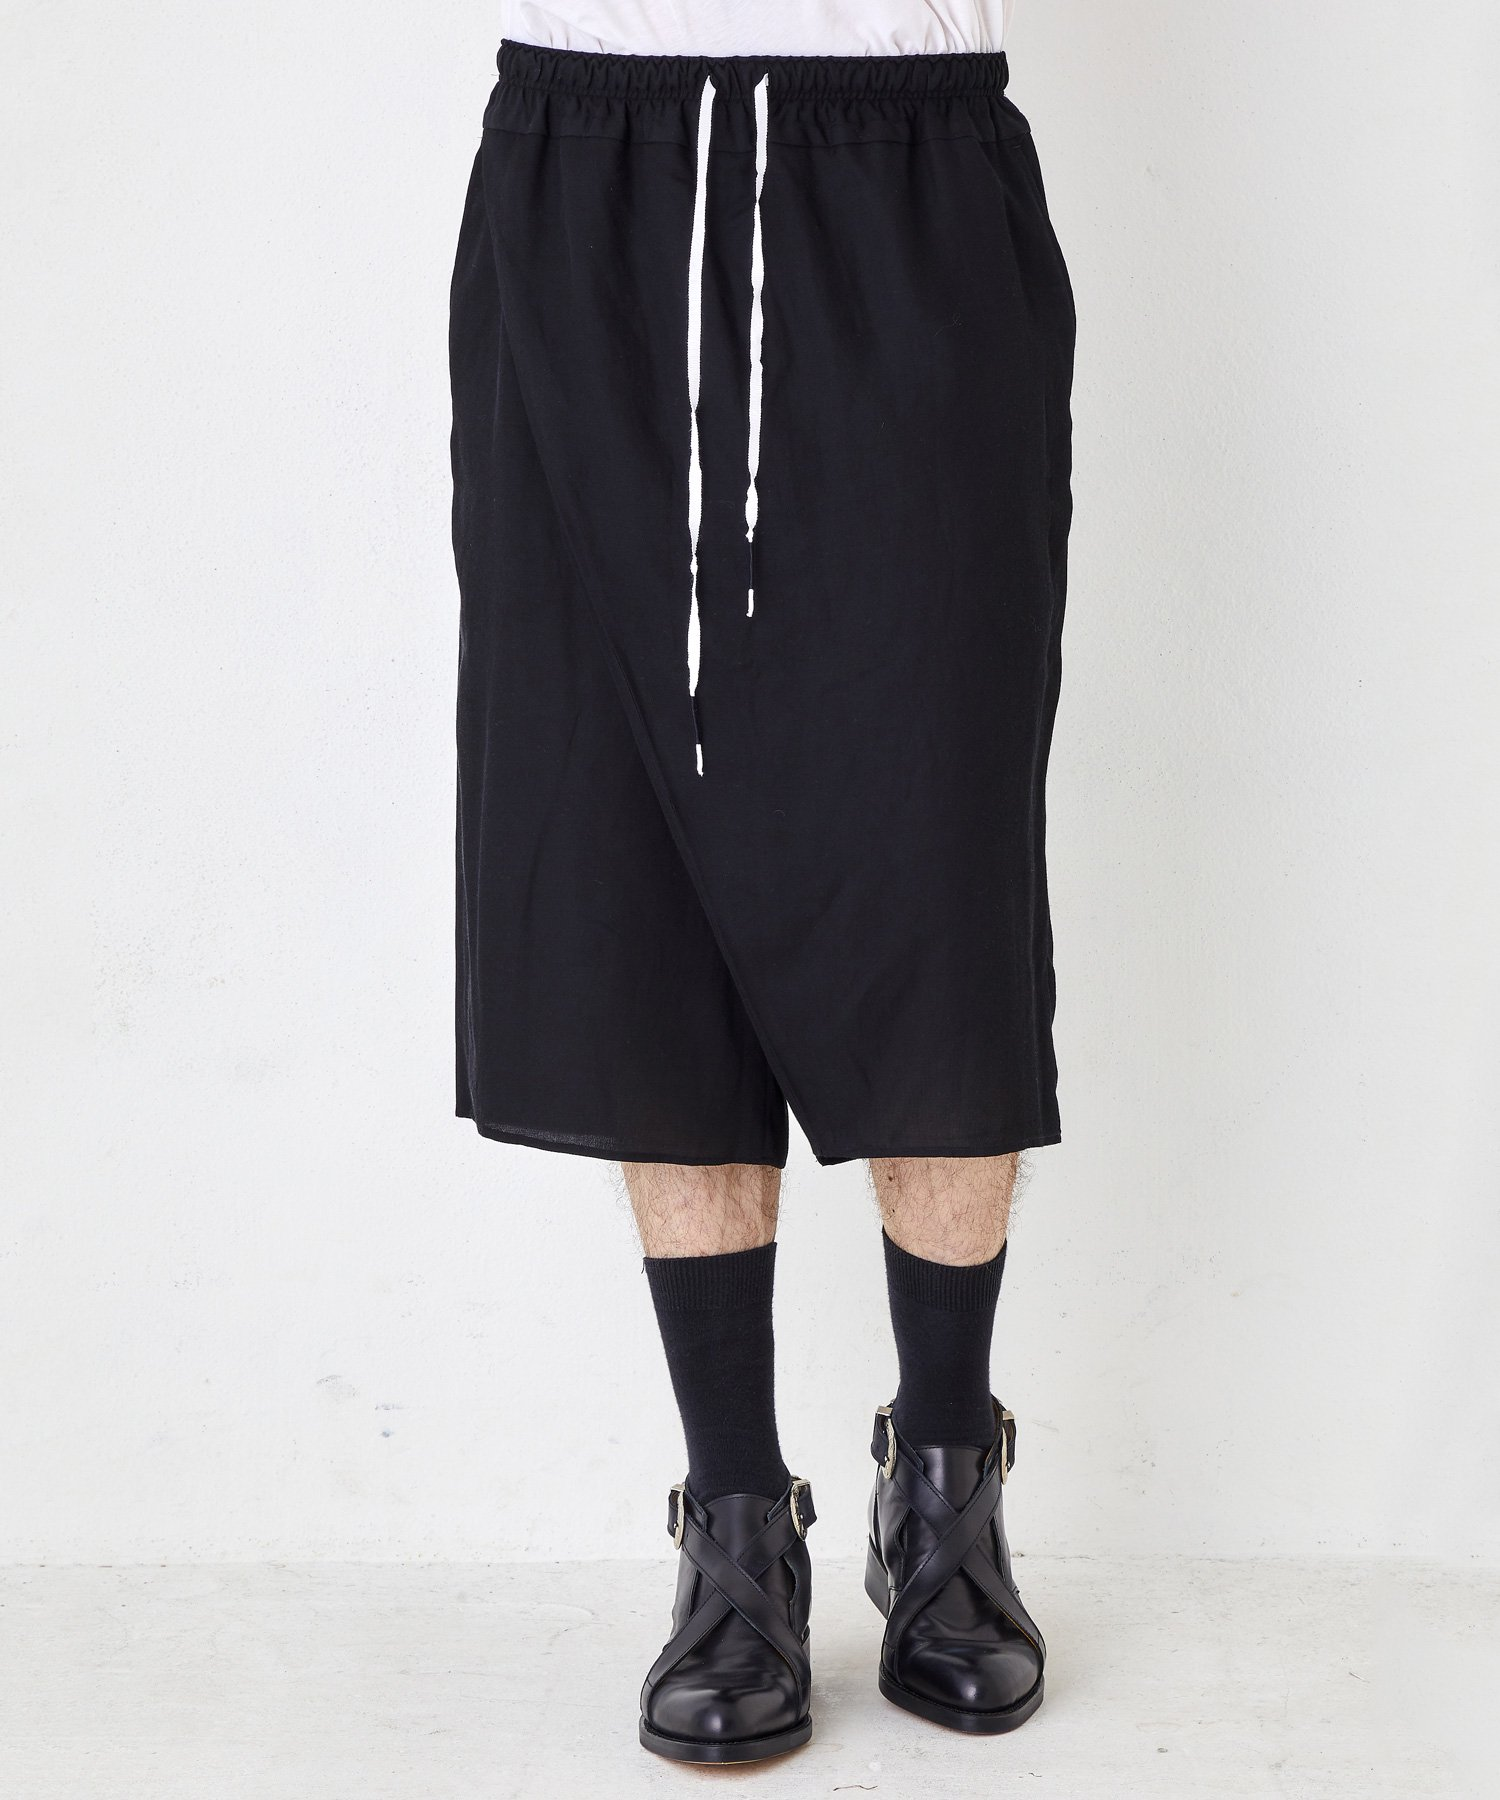 SKIRT SHORTS【Black】